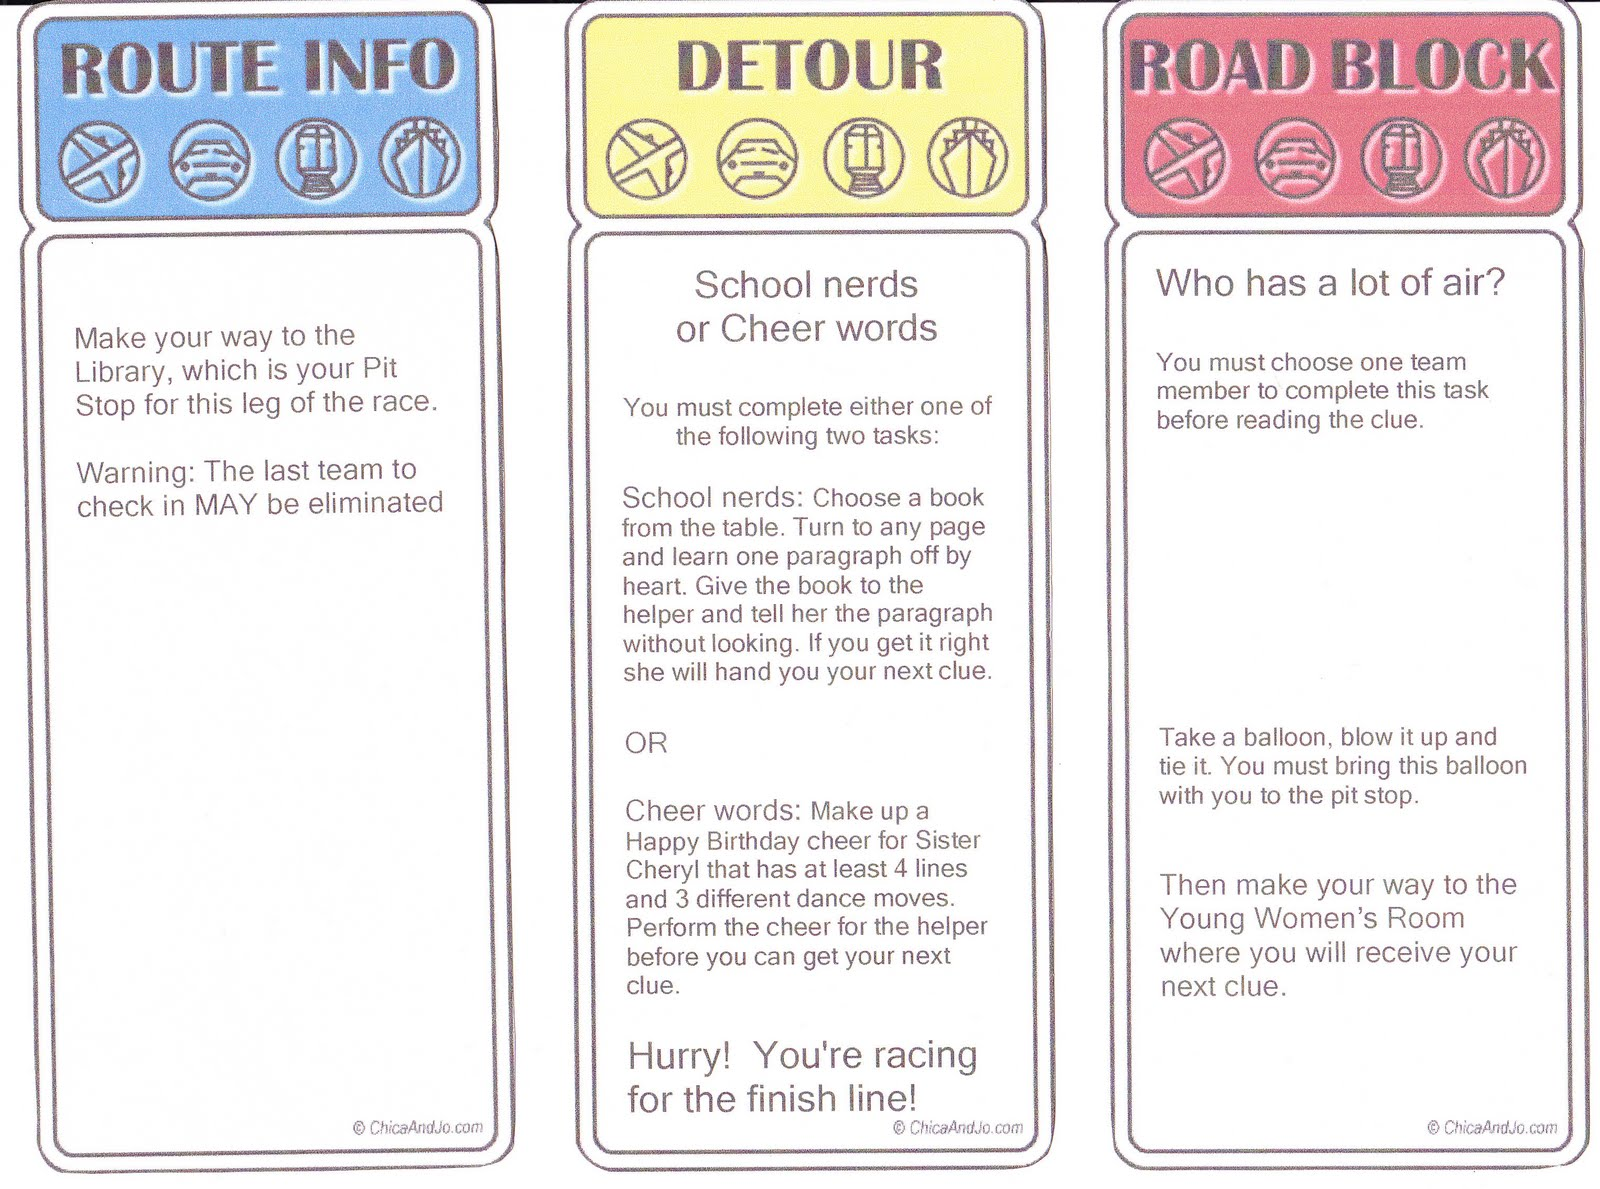 Here Are Some Of The Clues Including One Detours And Roadblocks They Had To Complete